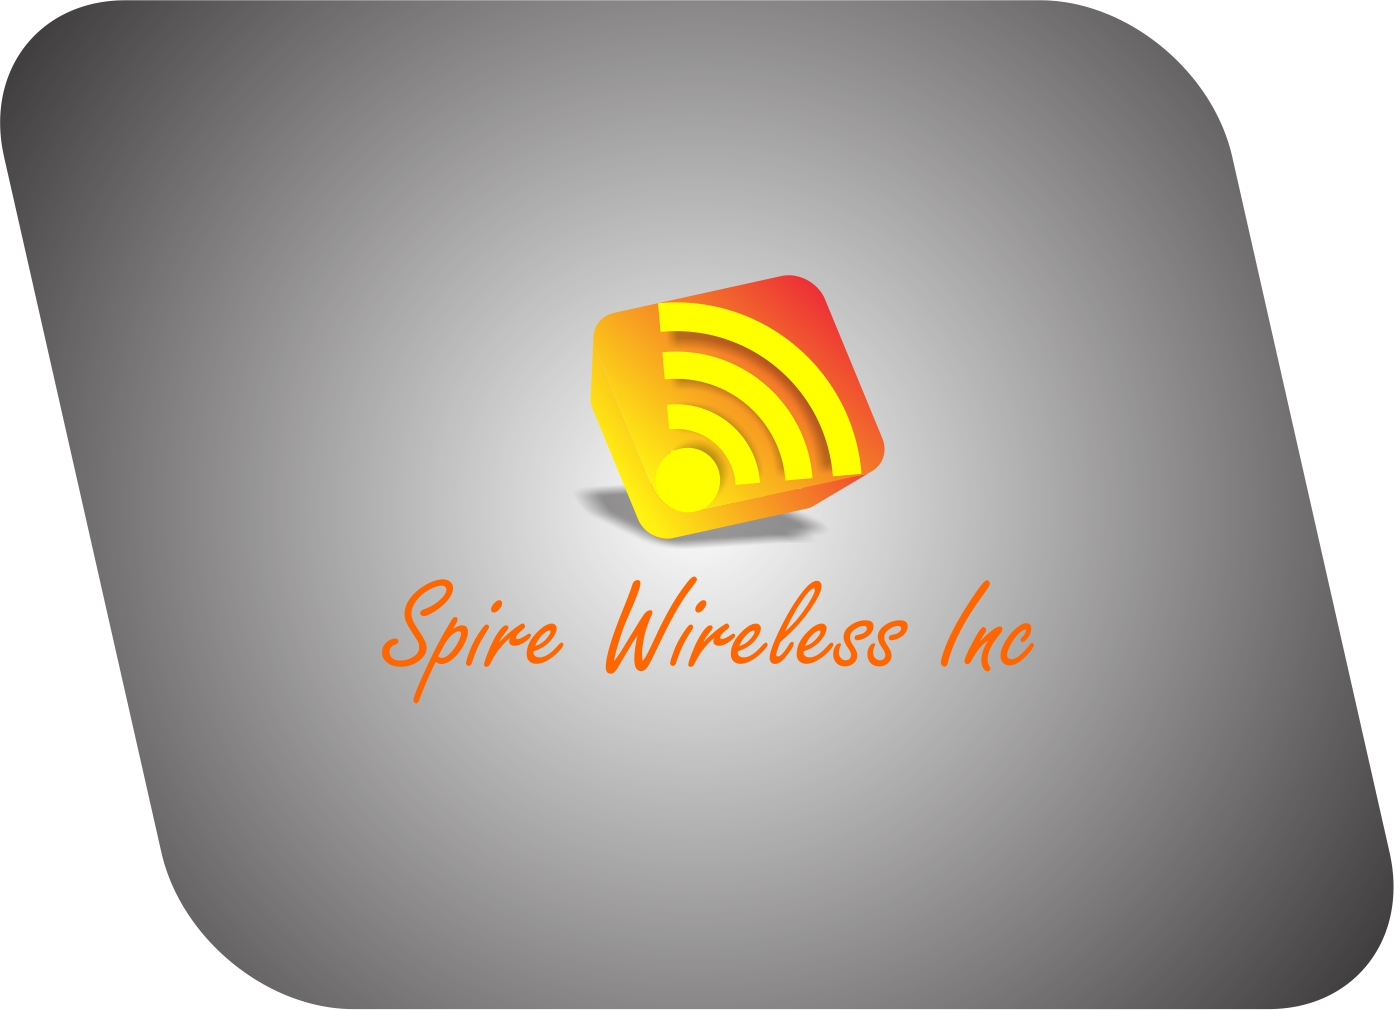 Logo Design by Hudy Wake - Entry No. 17 in the Logo Design Contest Logo Design for Spire Wireless Inc.